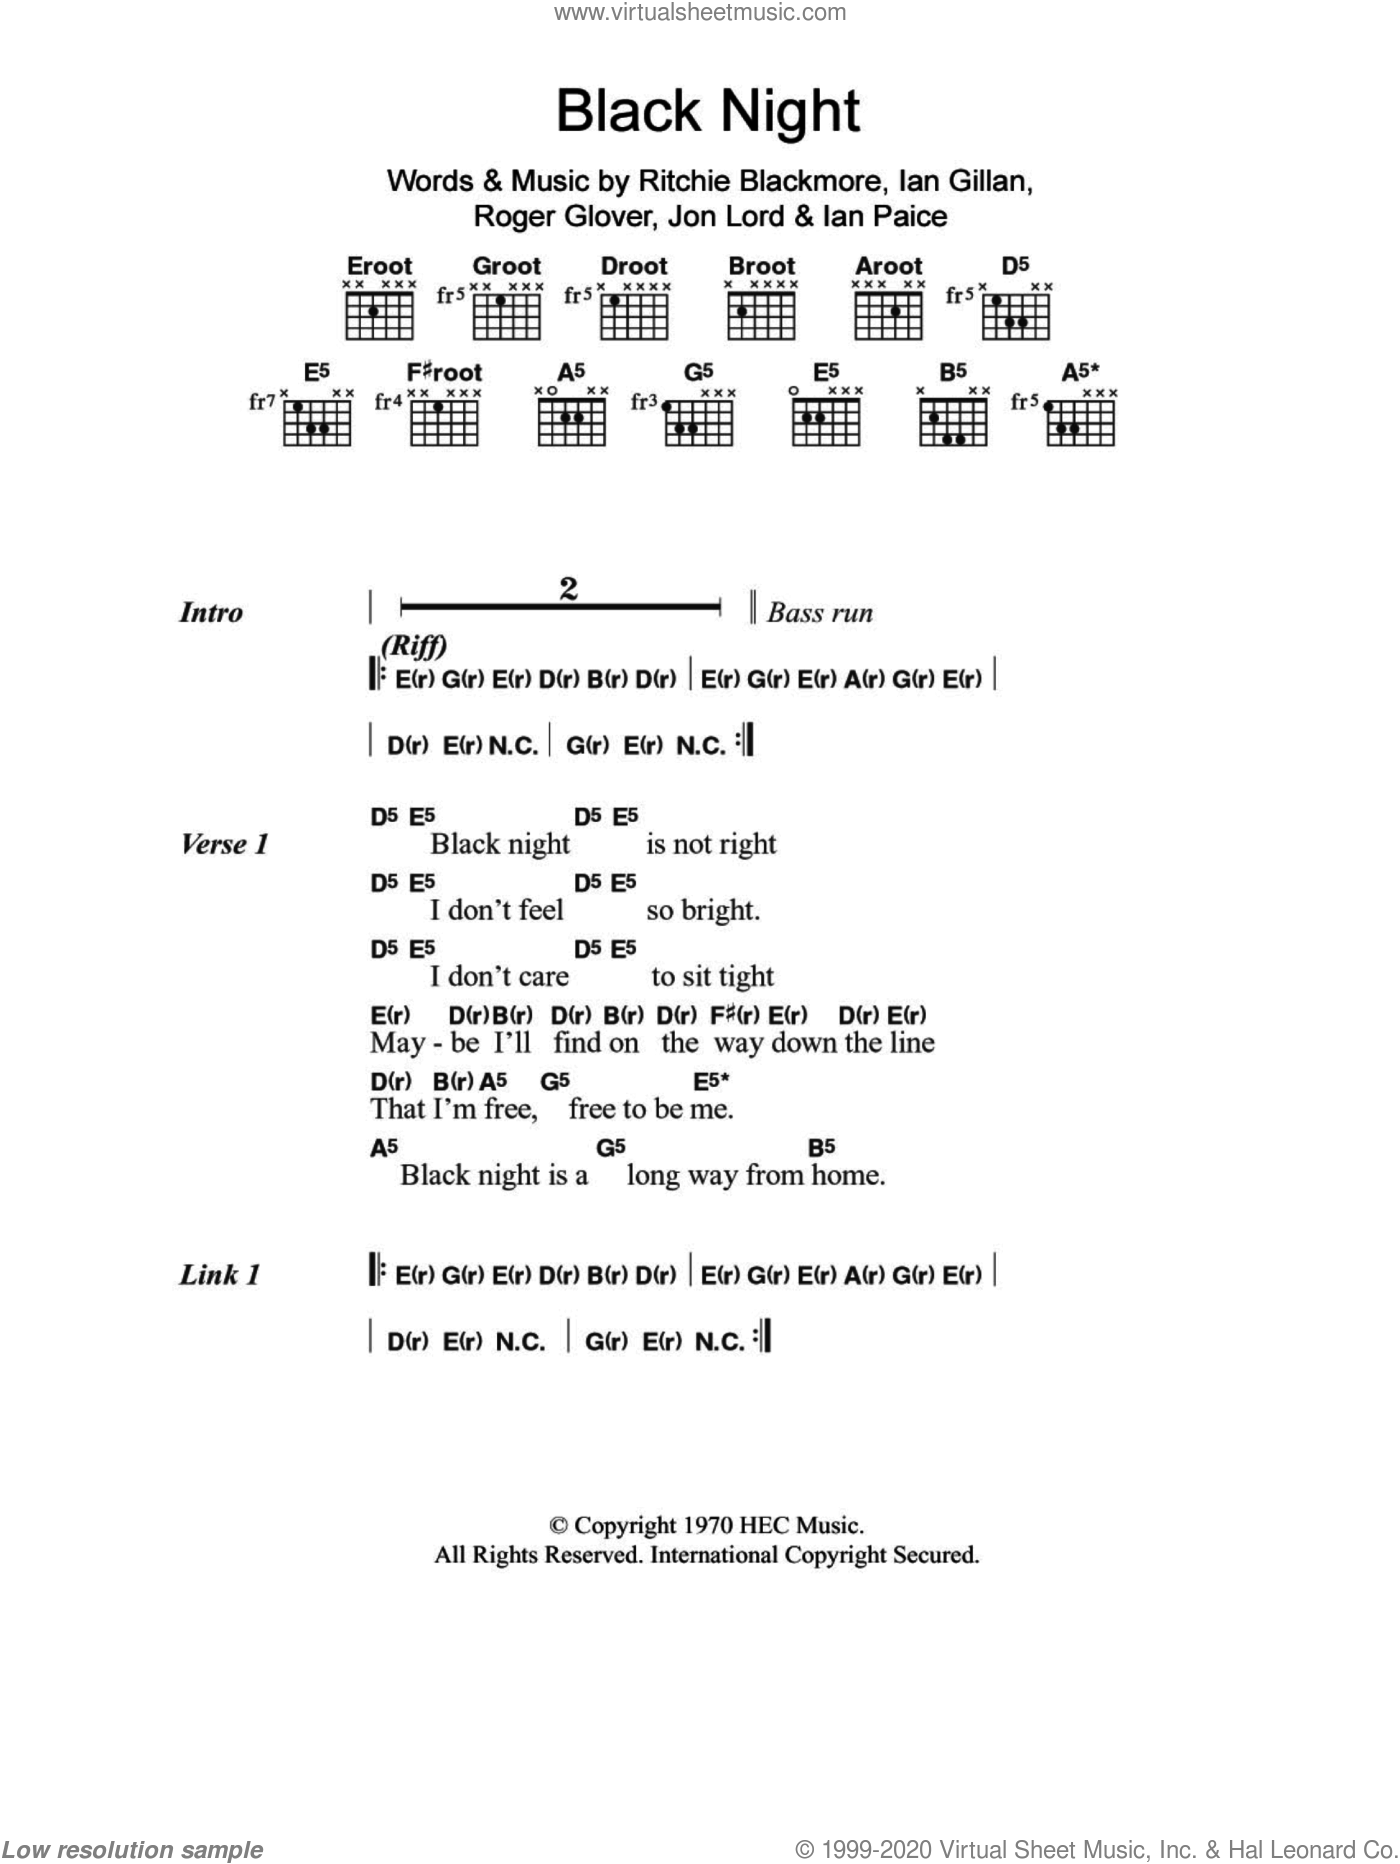 Black Night sheet music for guitar (chords, lyrics, melody) by Roger Glover